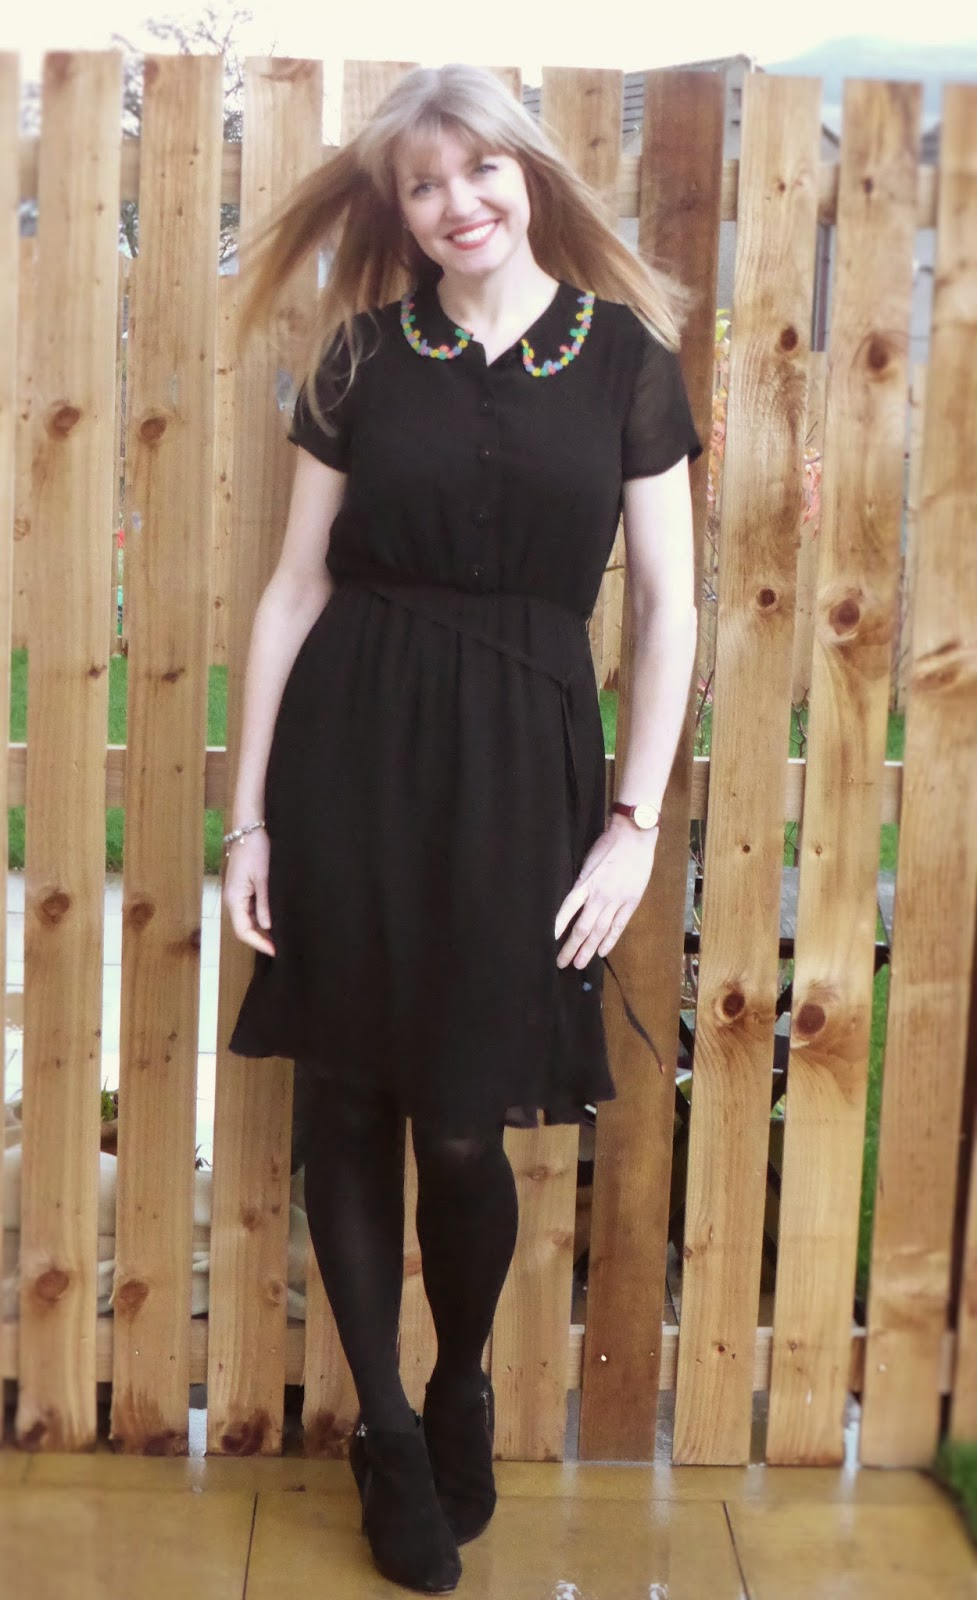 Black dress yellow heels - I Wore It Last Easter With Bare Legs And Yellow Heels Today I Wore It With Opaque Tights Heeled Ankle Boots And A Black Velvet Jacket